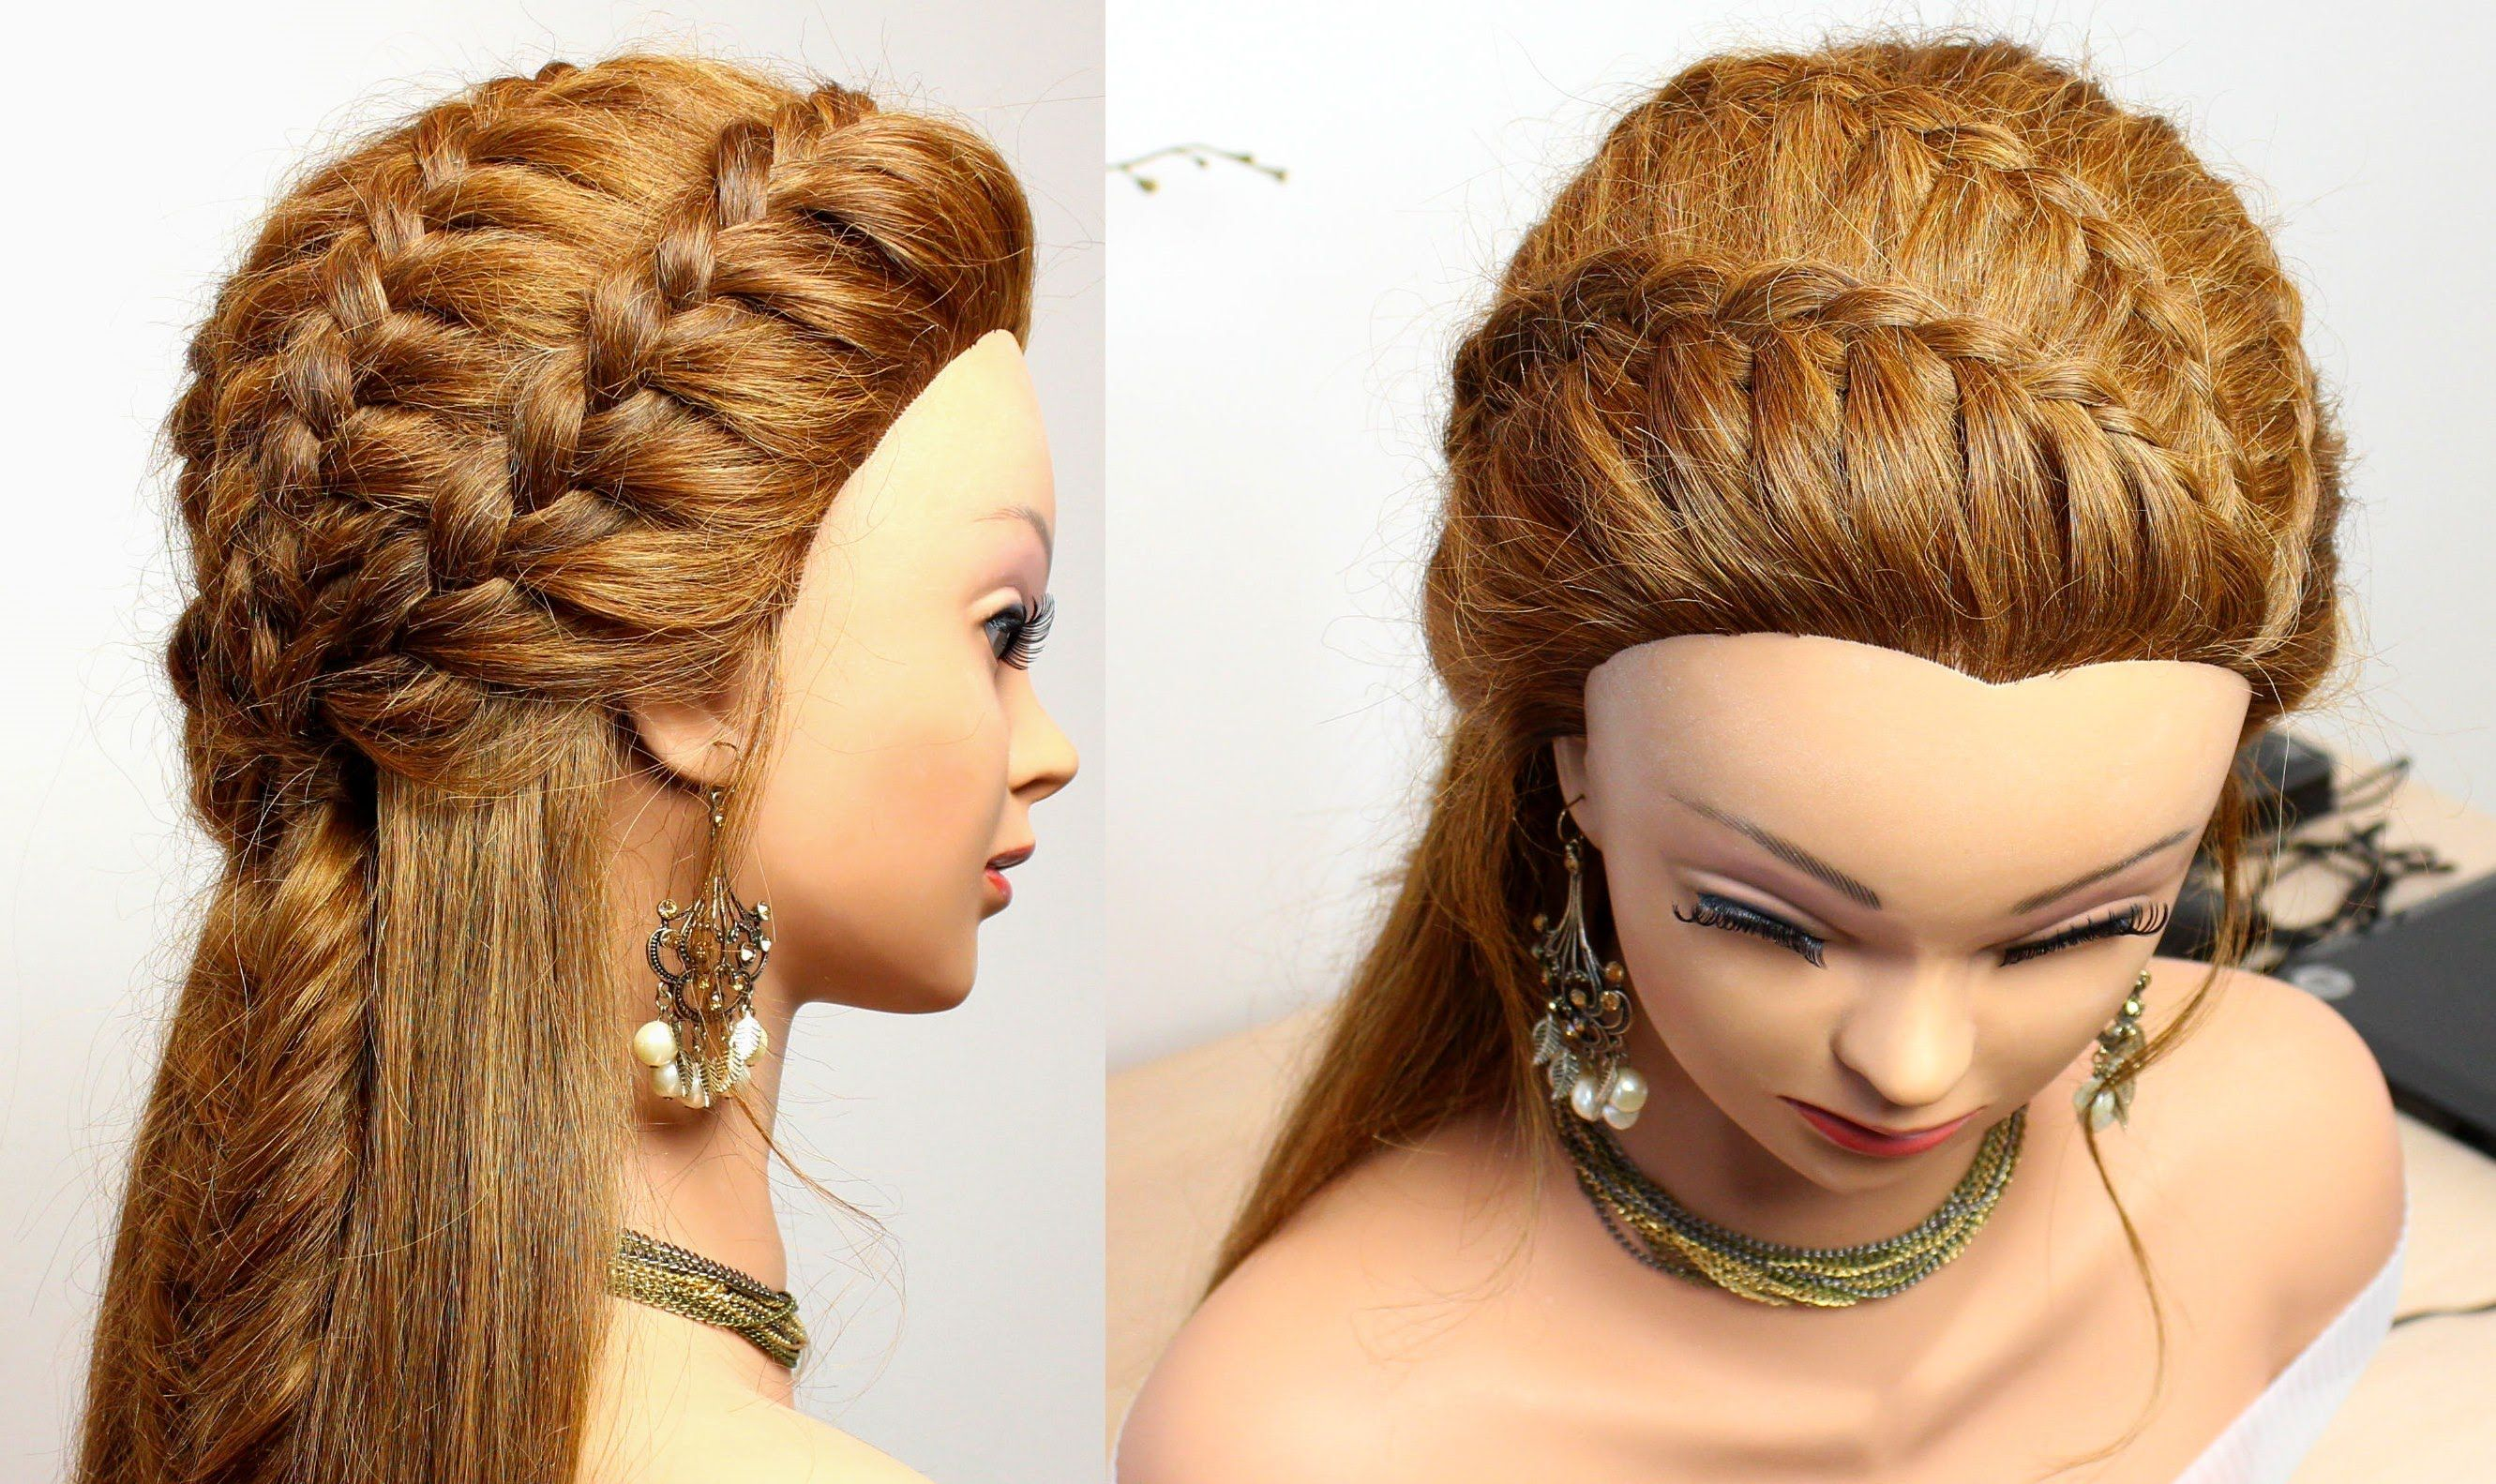 Wallpaper hair braids of mobile high resolution hairstyle for medium long easy braids